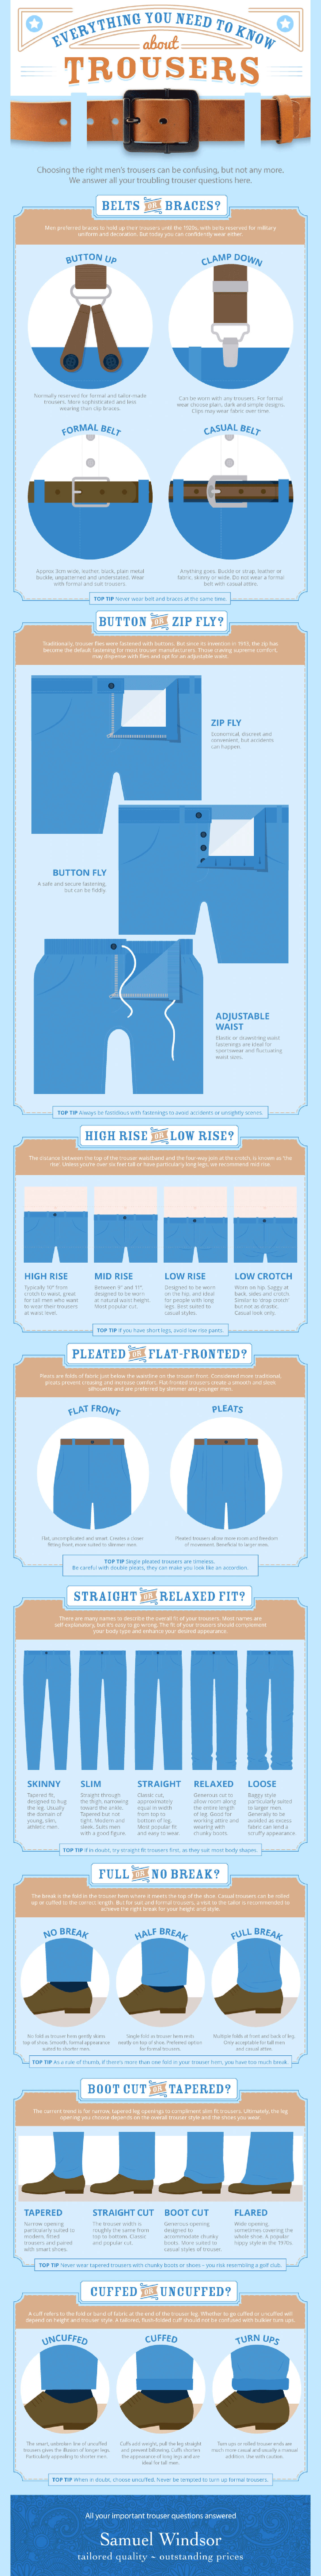 Everything You Need to Know About Trousers Infographic